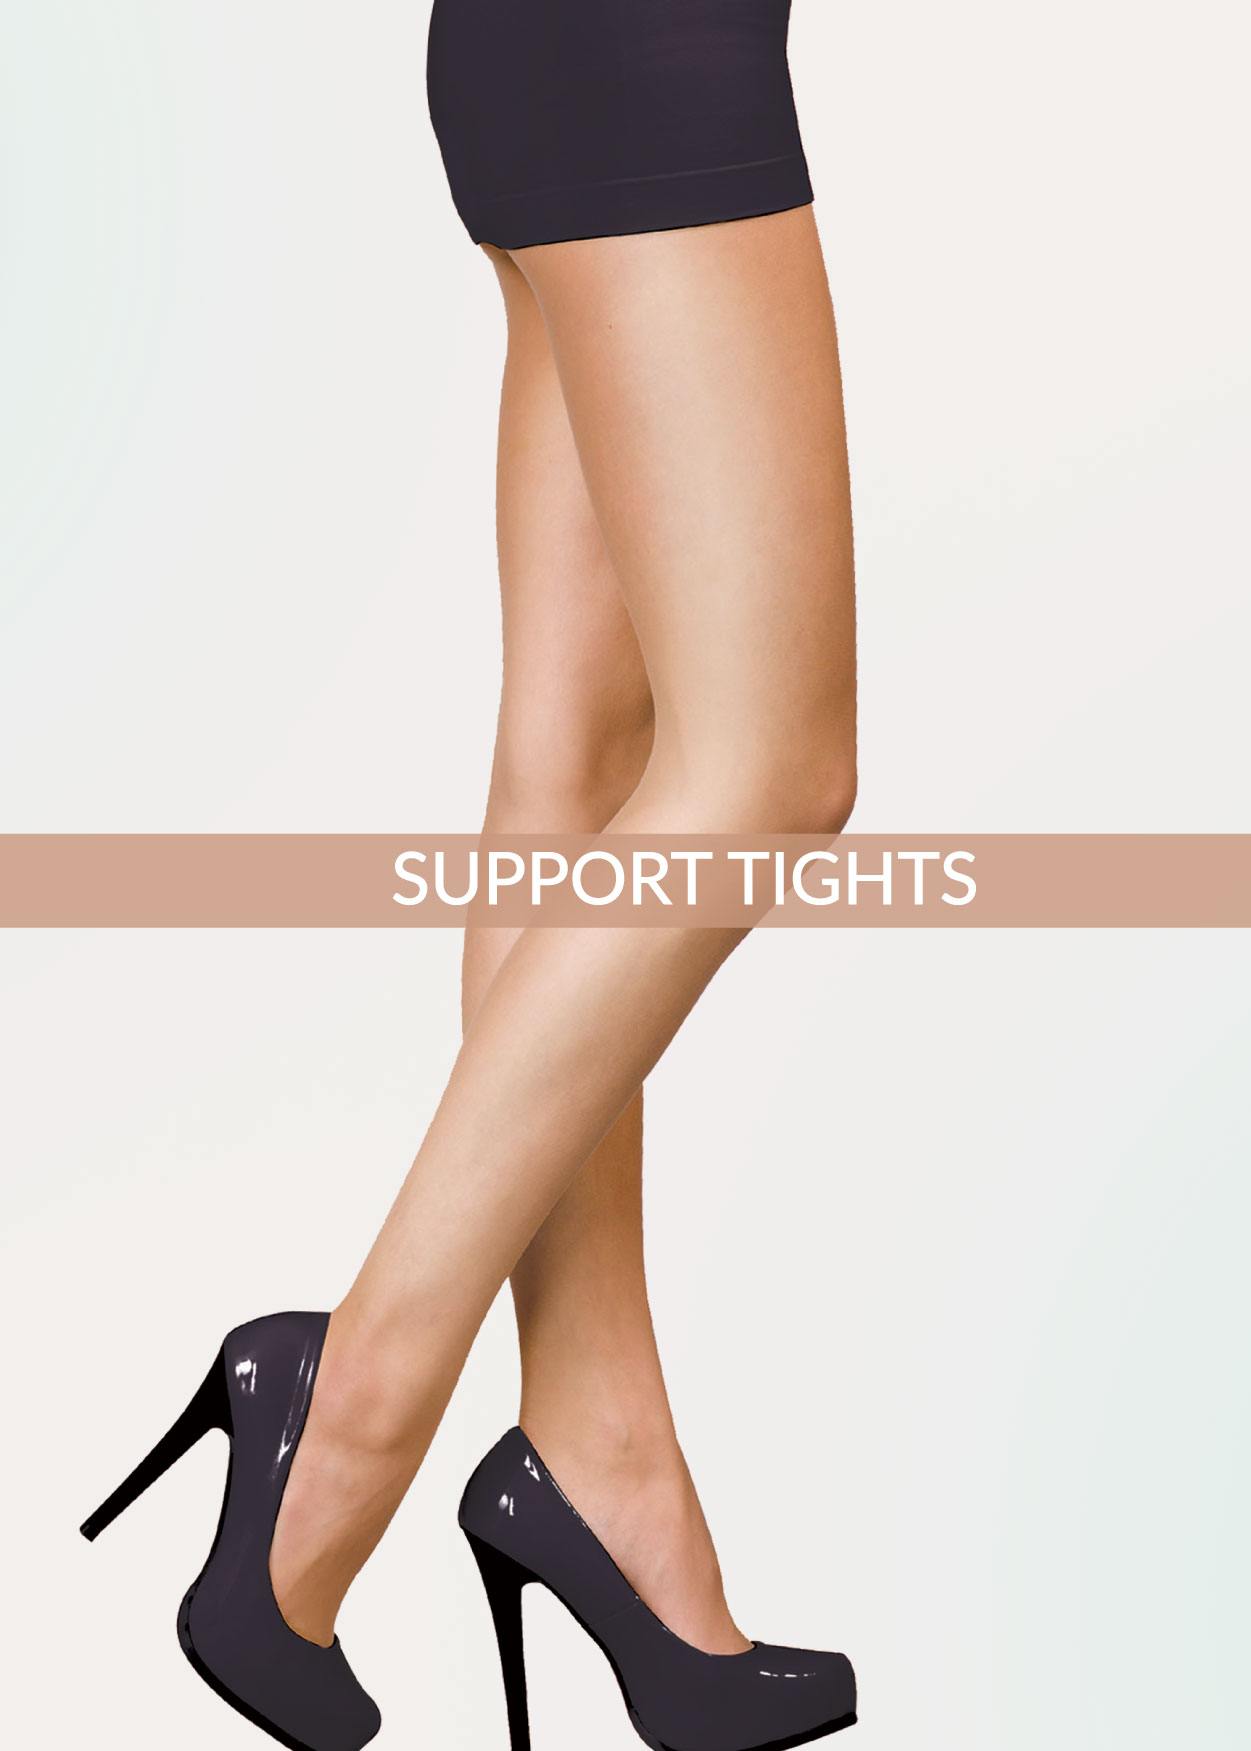 Support Tights